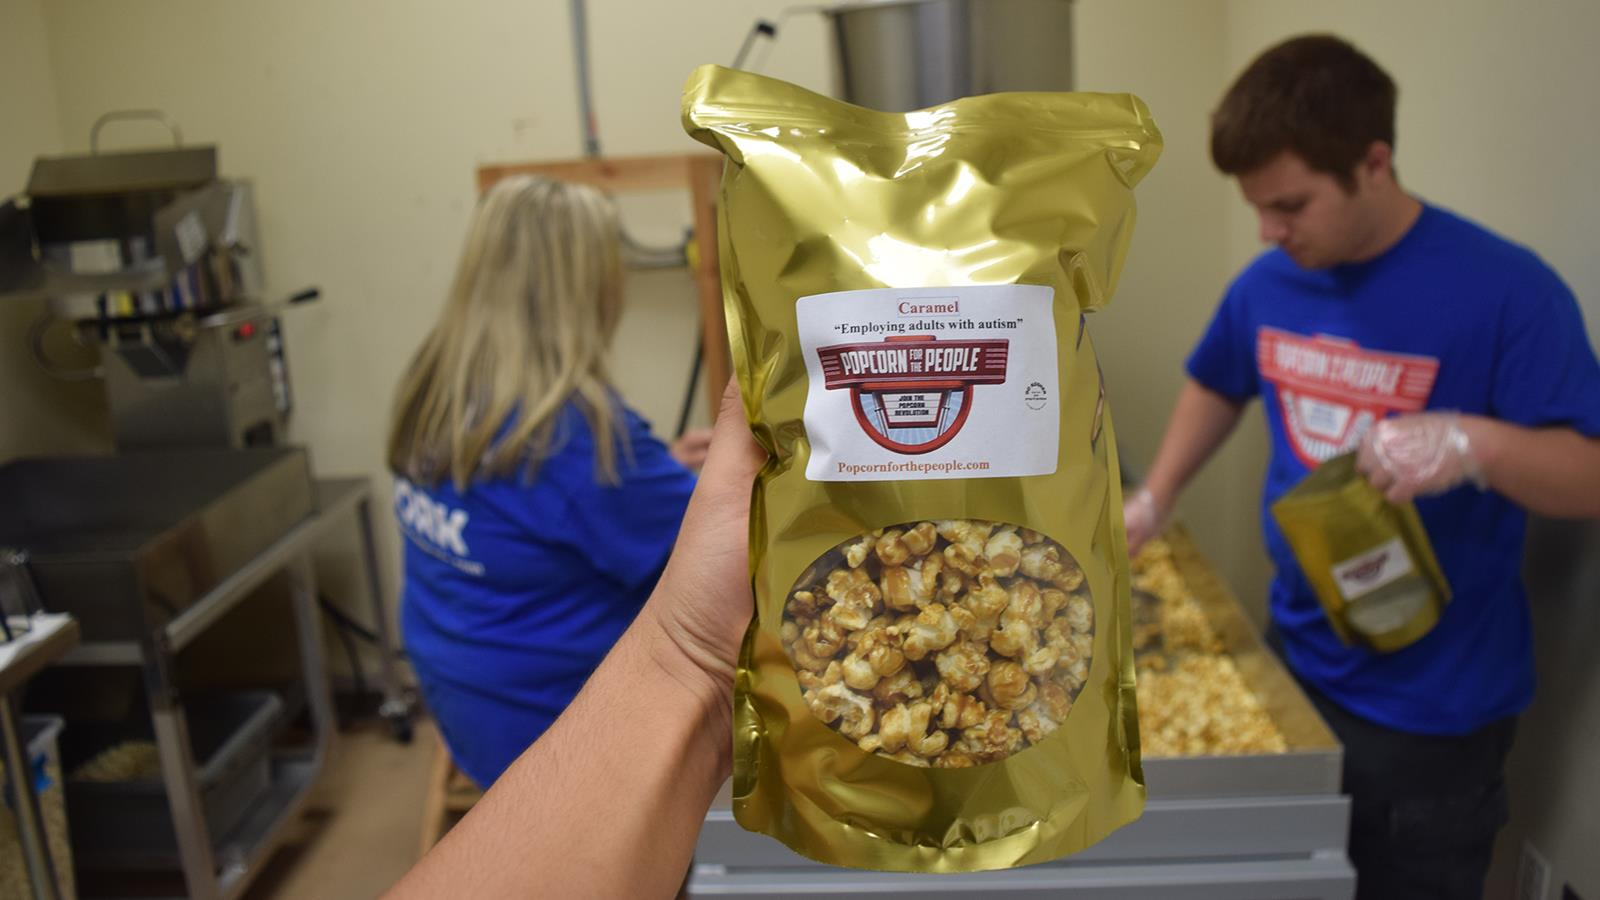 Popcorn for the People - East Brunswick, NJ